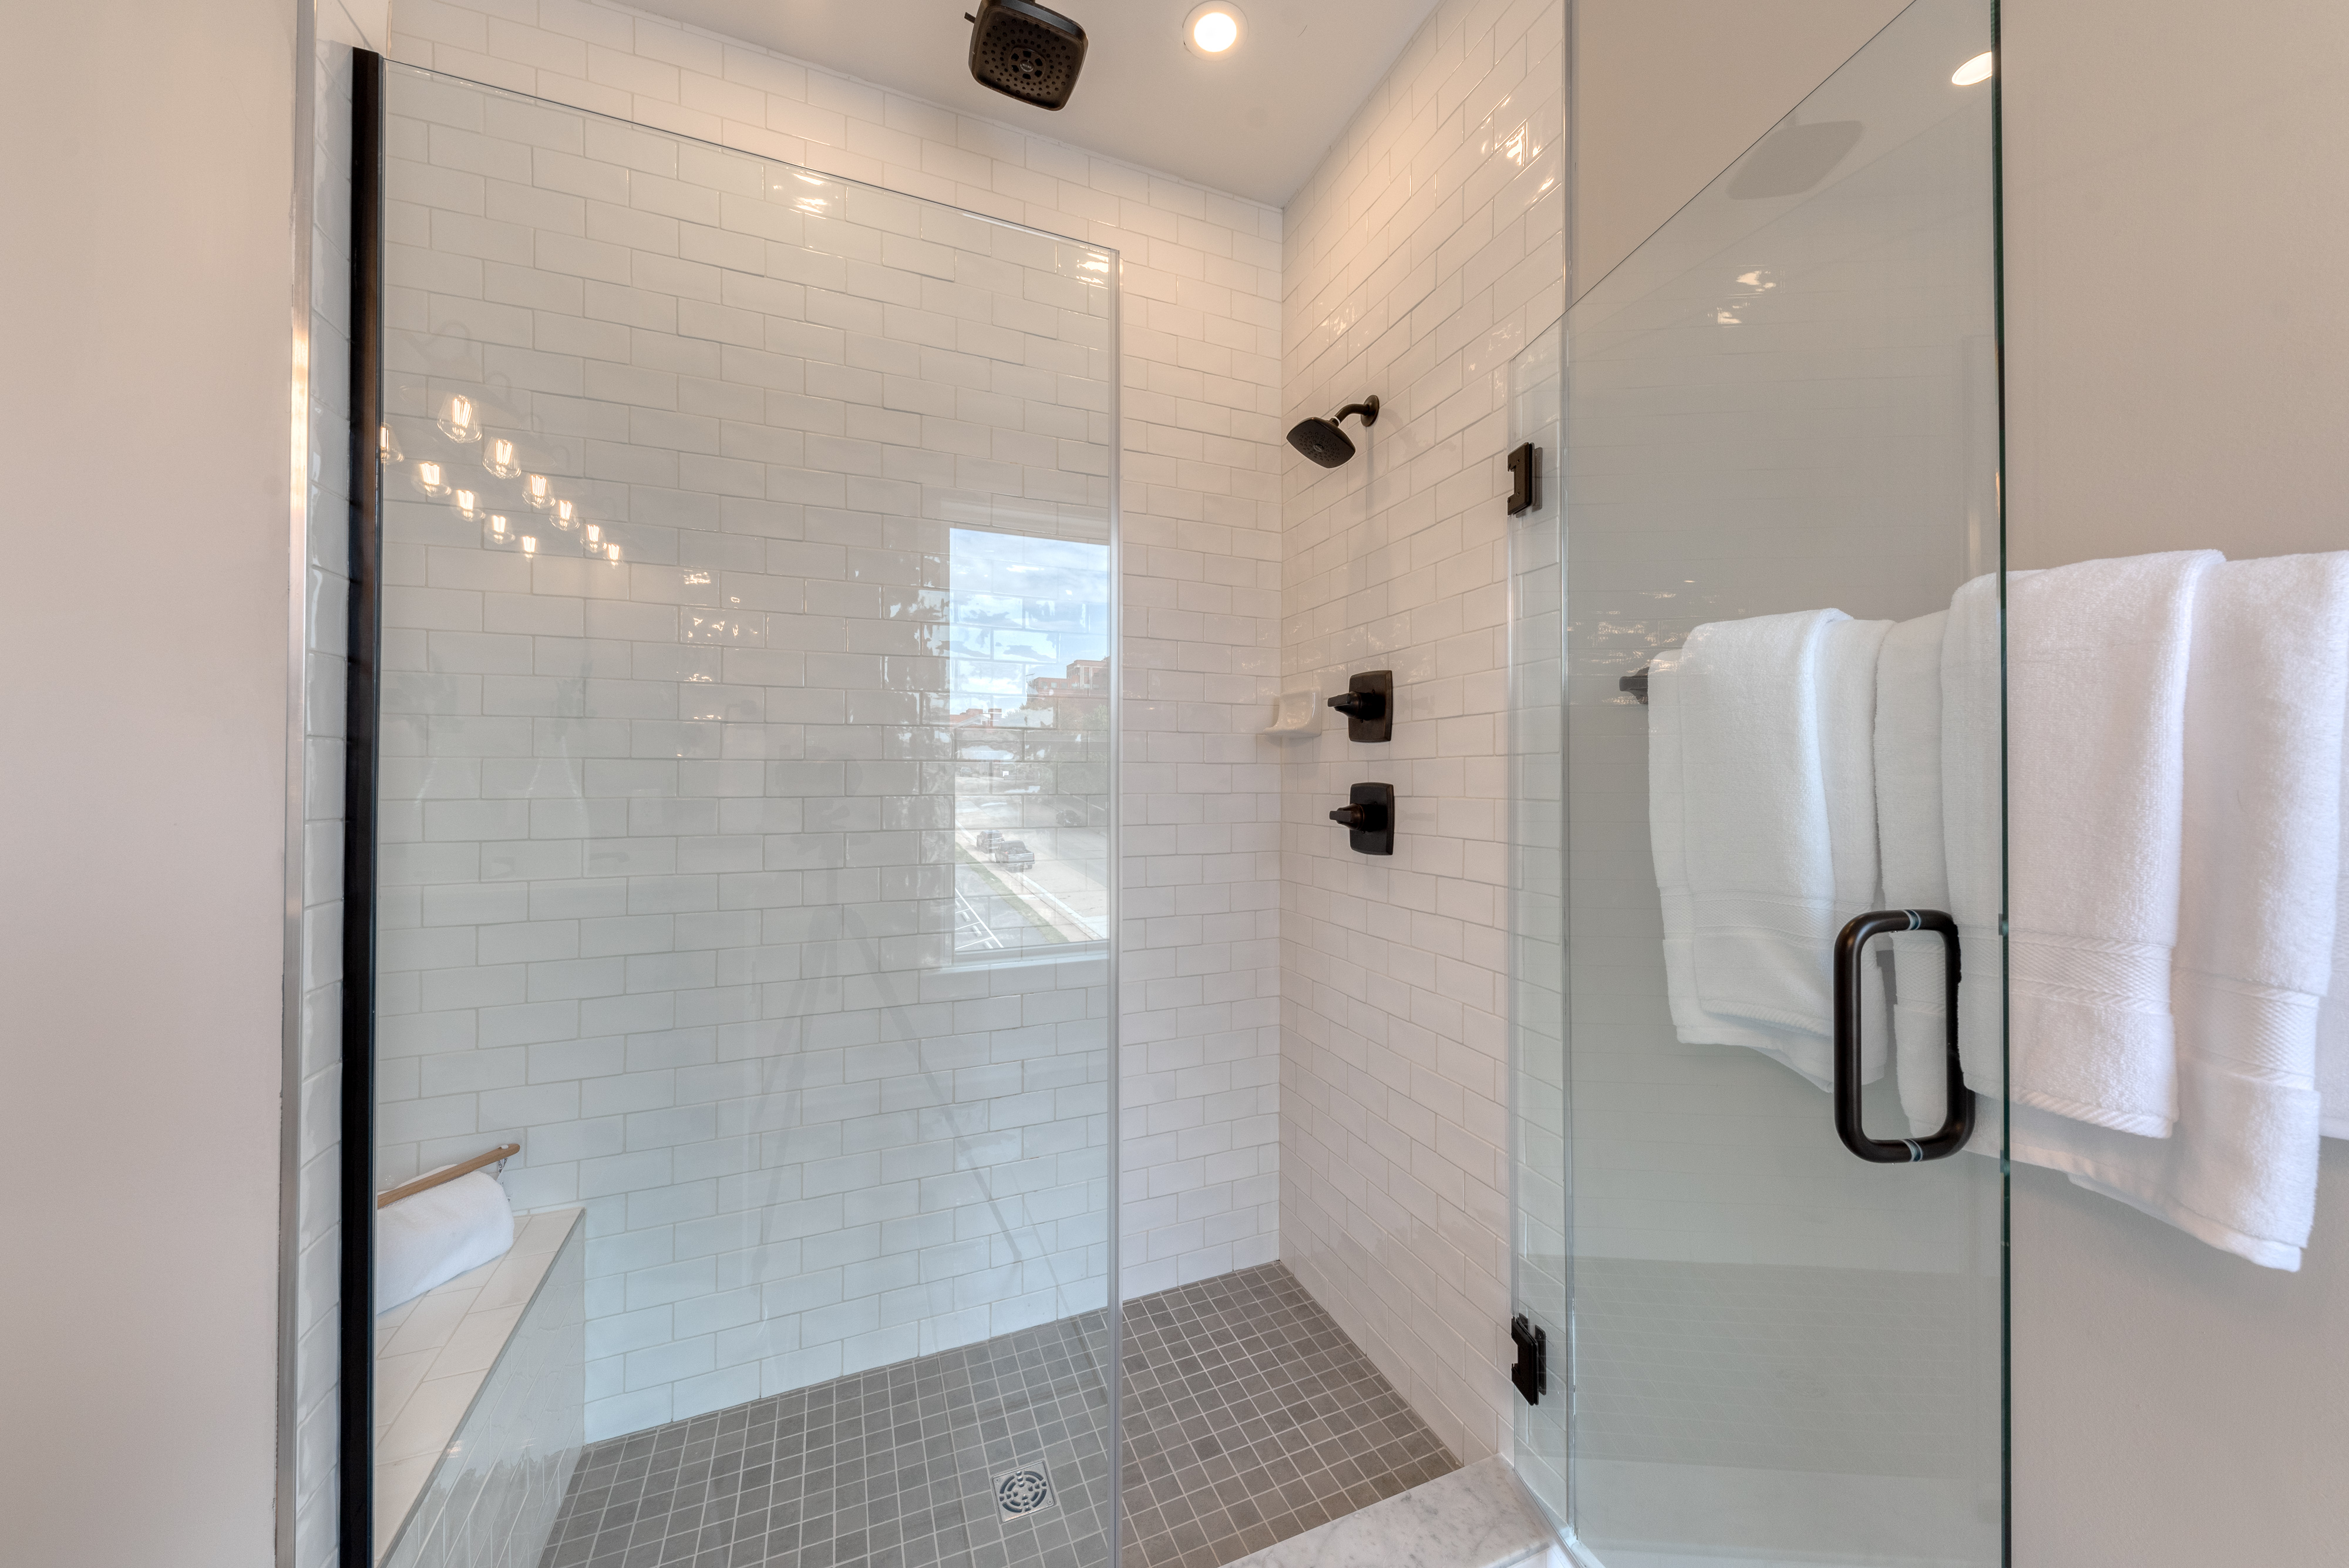 Owners Shower with Frameless Shower Door, White Tile, and Black Hardware